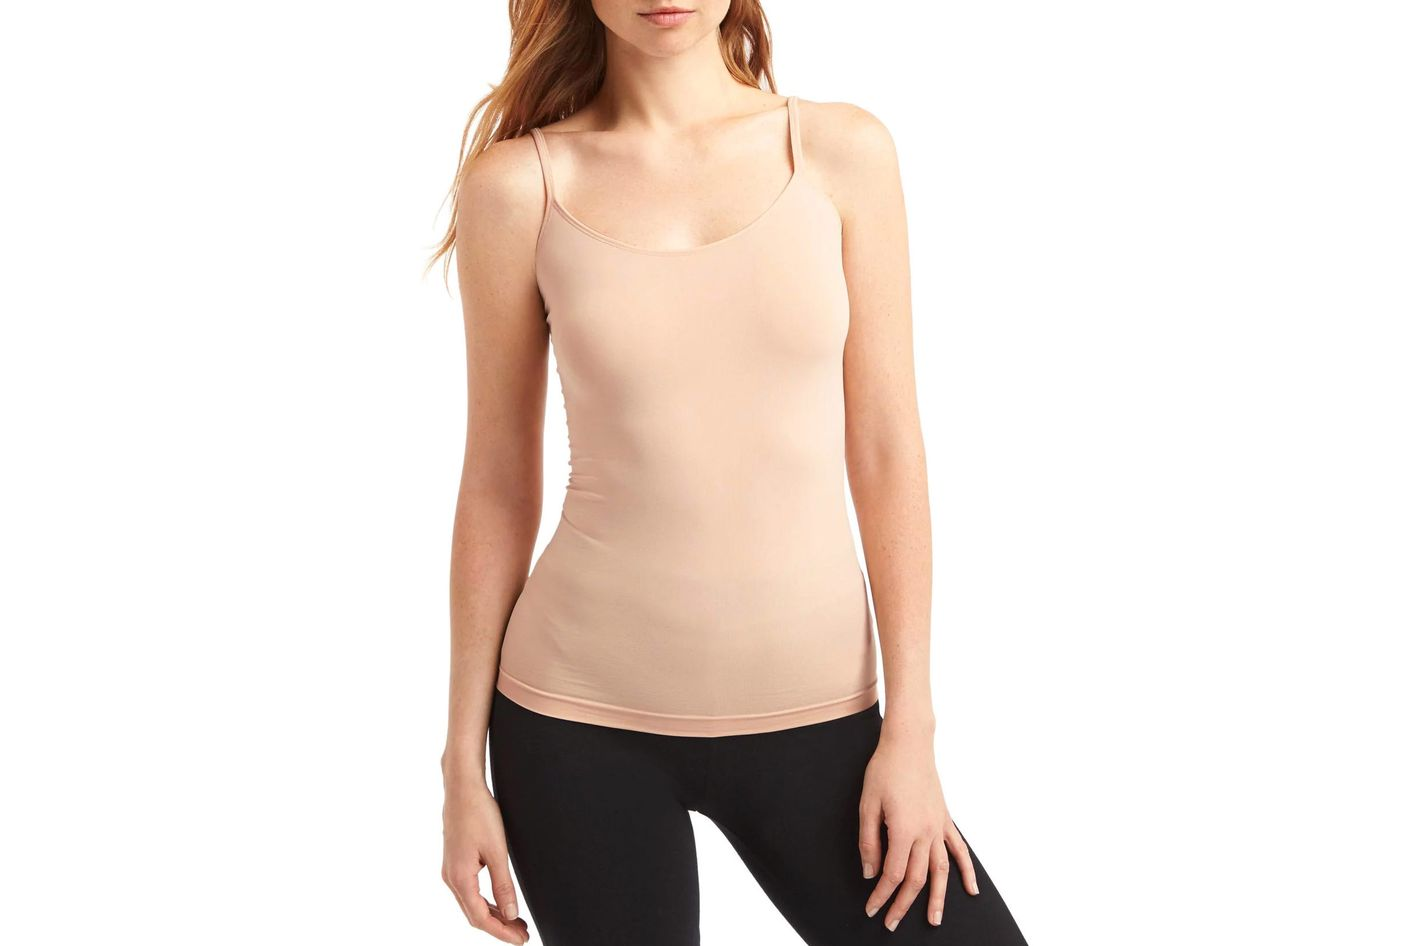 Body Support Cami